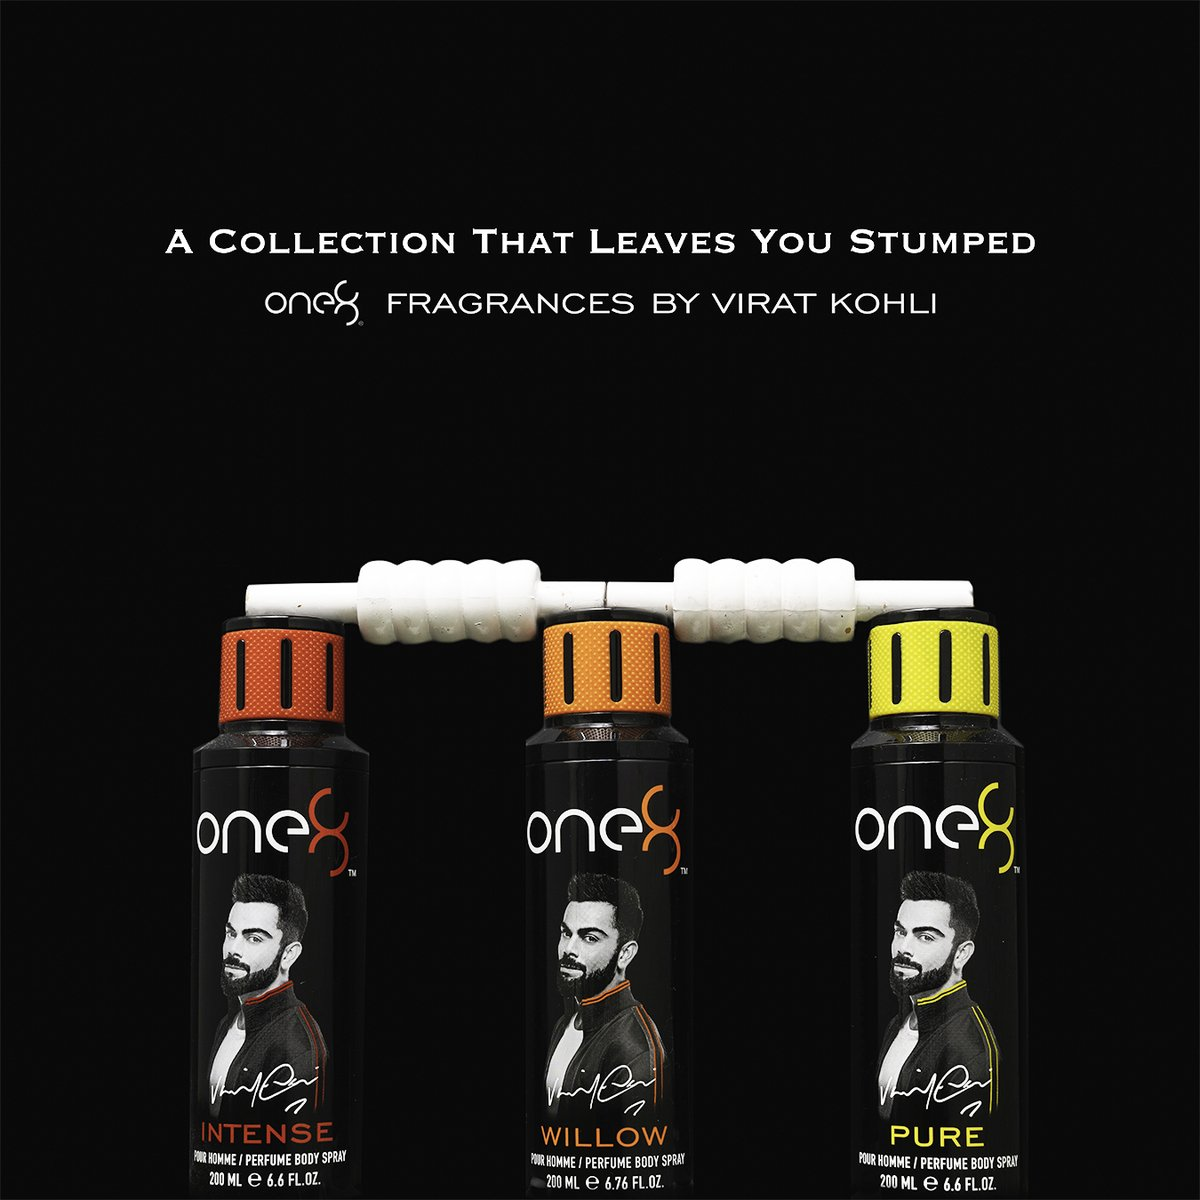 Fragrances to bowl you over! Choose from an intriguing range of perfumes from one8 Fragrances by Virat Kohli.   Shop now:   #one8Fragrances #ScentialsWorld @imVkohli